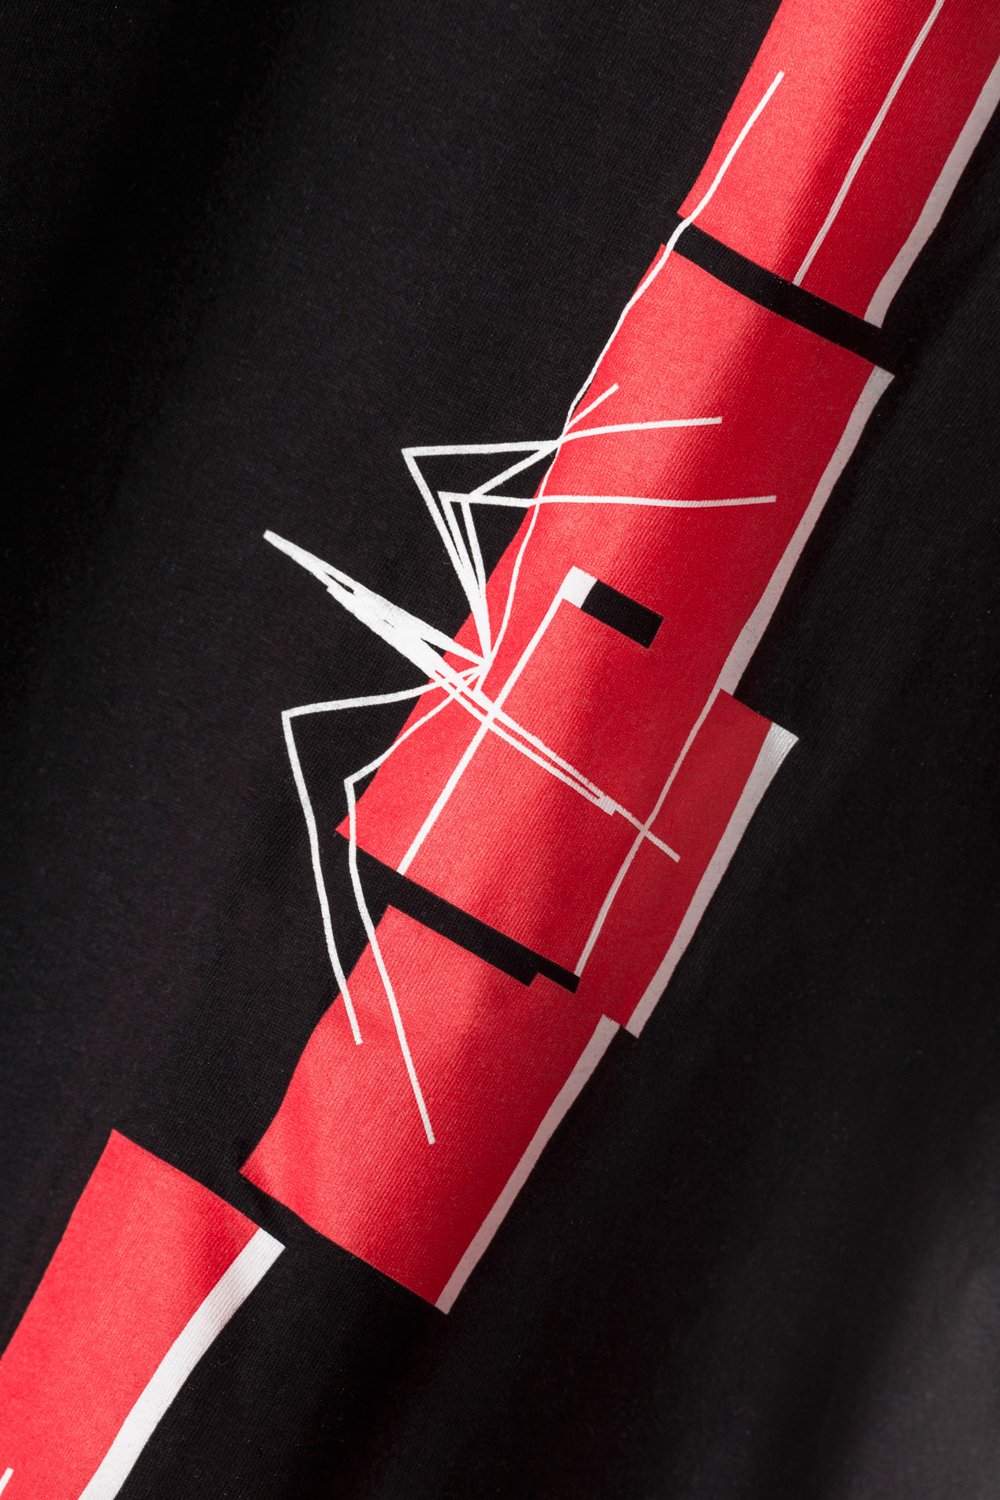 Cotton Man T-shirt Black Short Sleeve with Spider Red Print